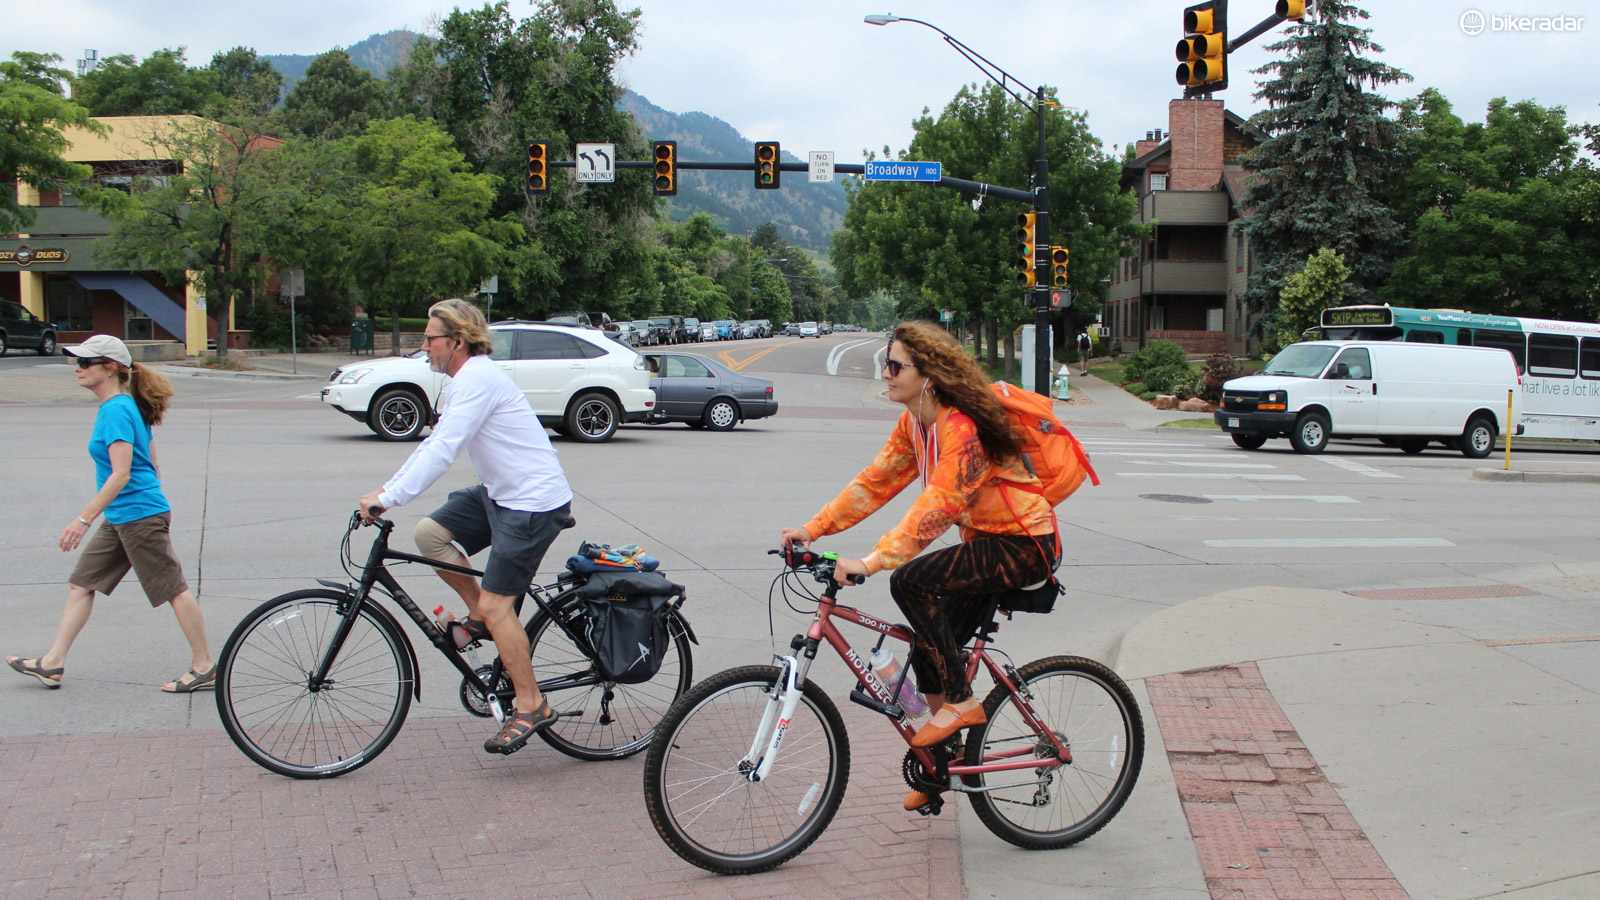 The more often motorists see cyclists, the safer those cyclists are